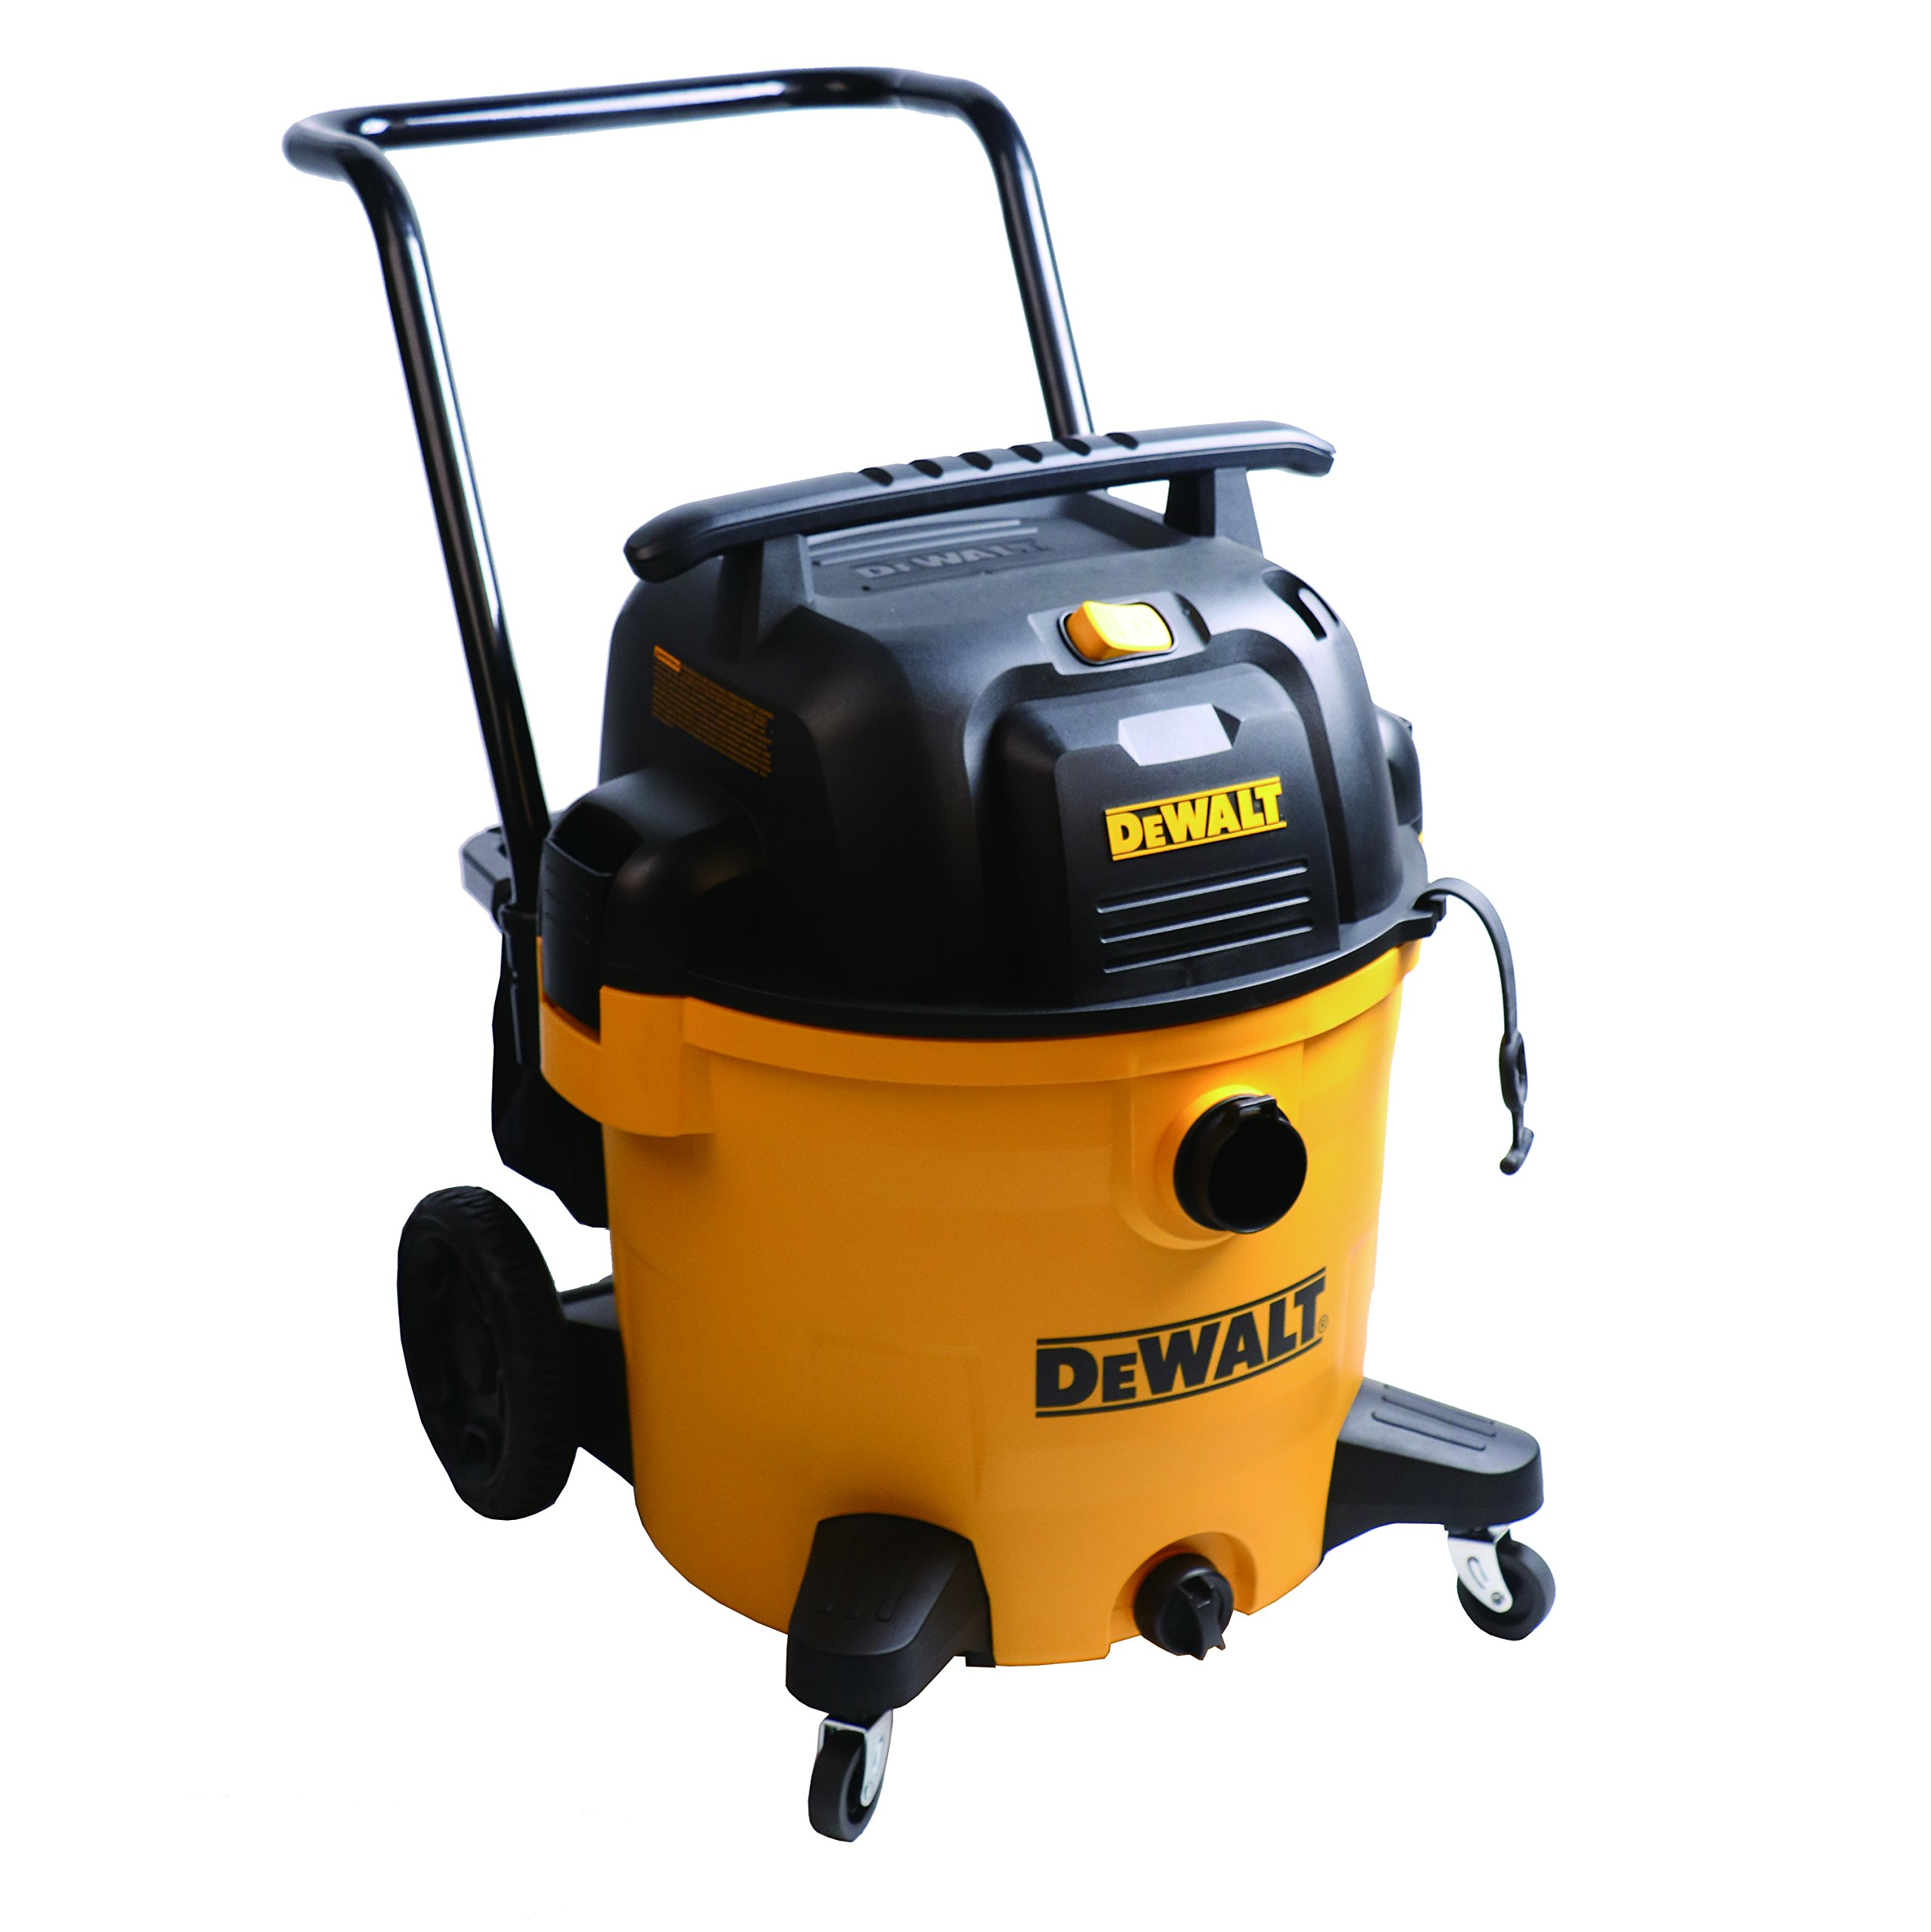 DeWALT 14 Gallon Poly Wet/Dry Vac by DEWALT (Image #1)